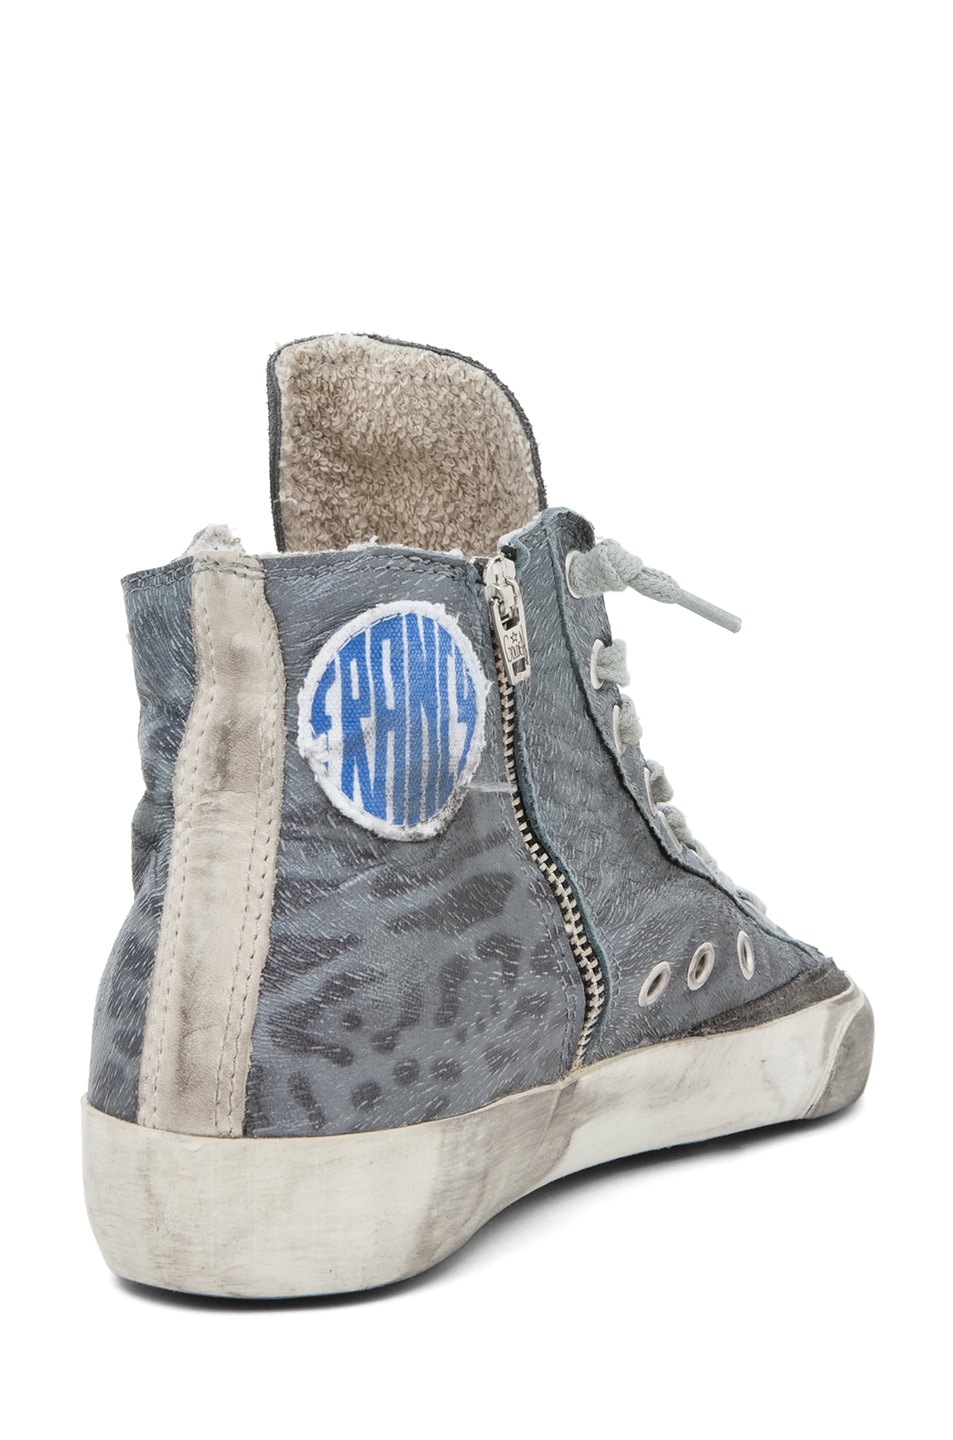 Image 3 of Golden Goose Francy Leopard High Top Sneaker in Silver